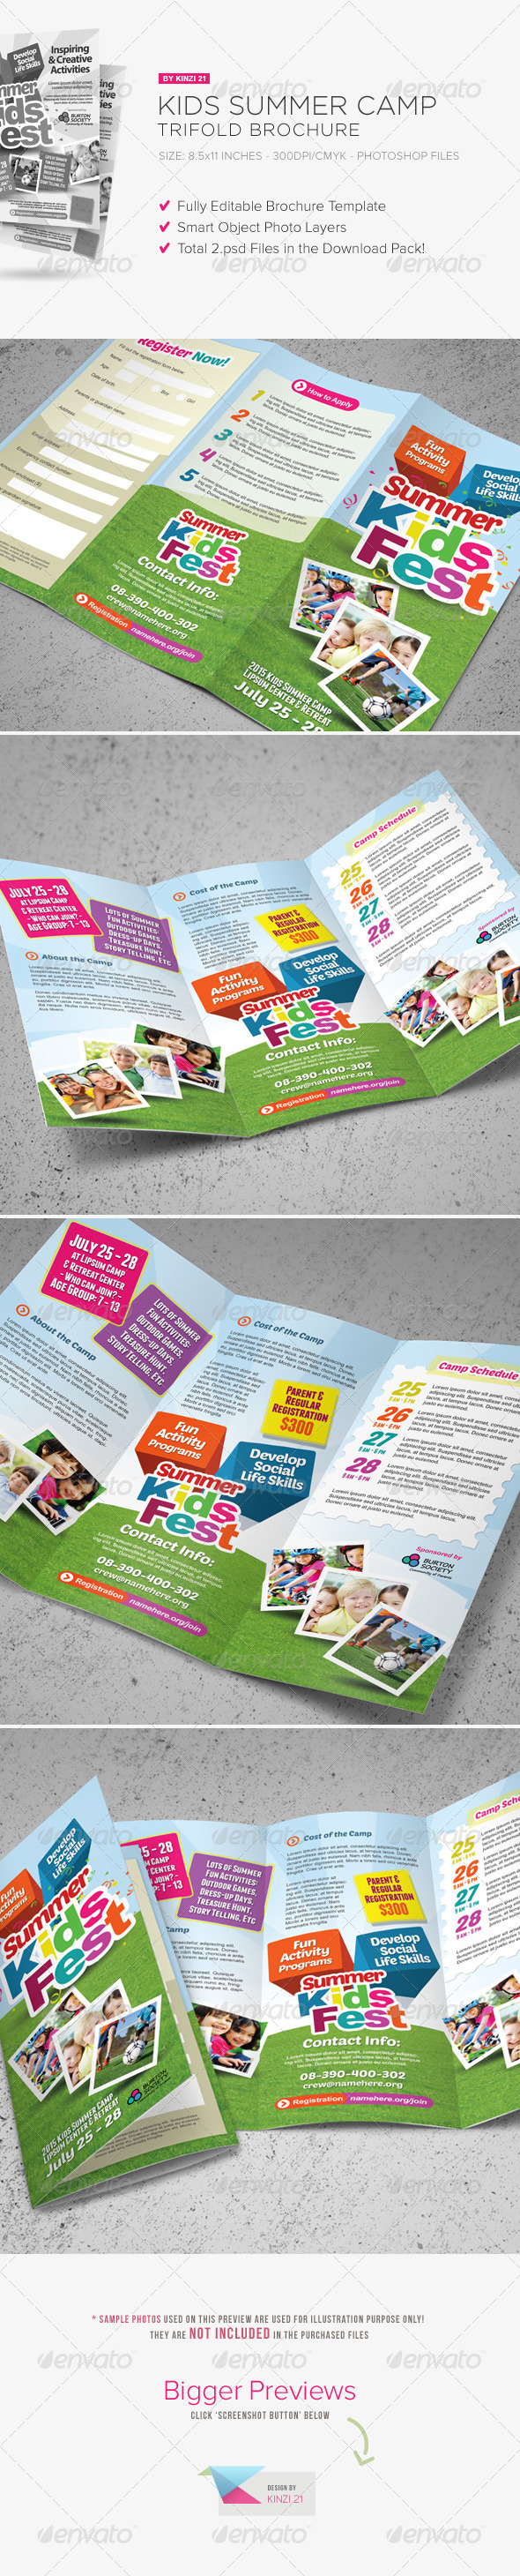 GraphicRiver Kids Summer Camp Trifold Brochure 7812618